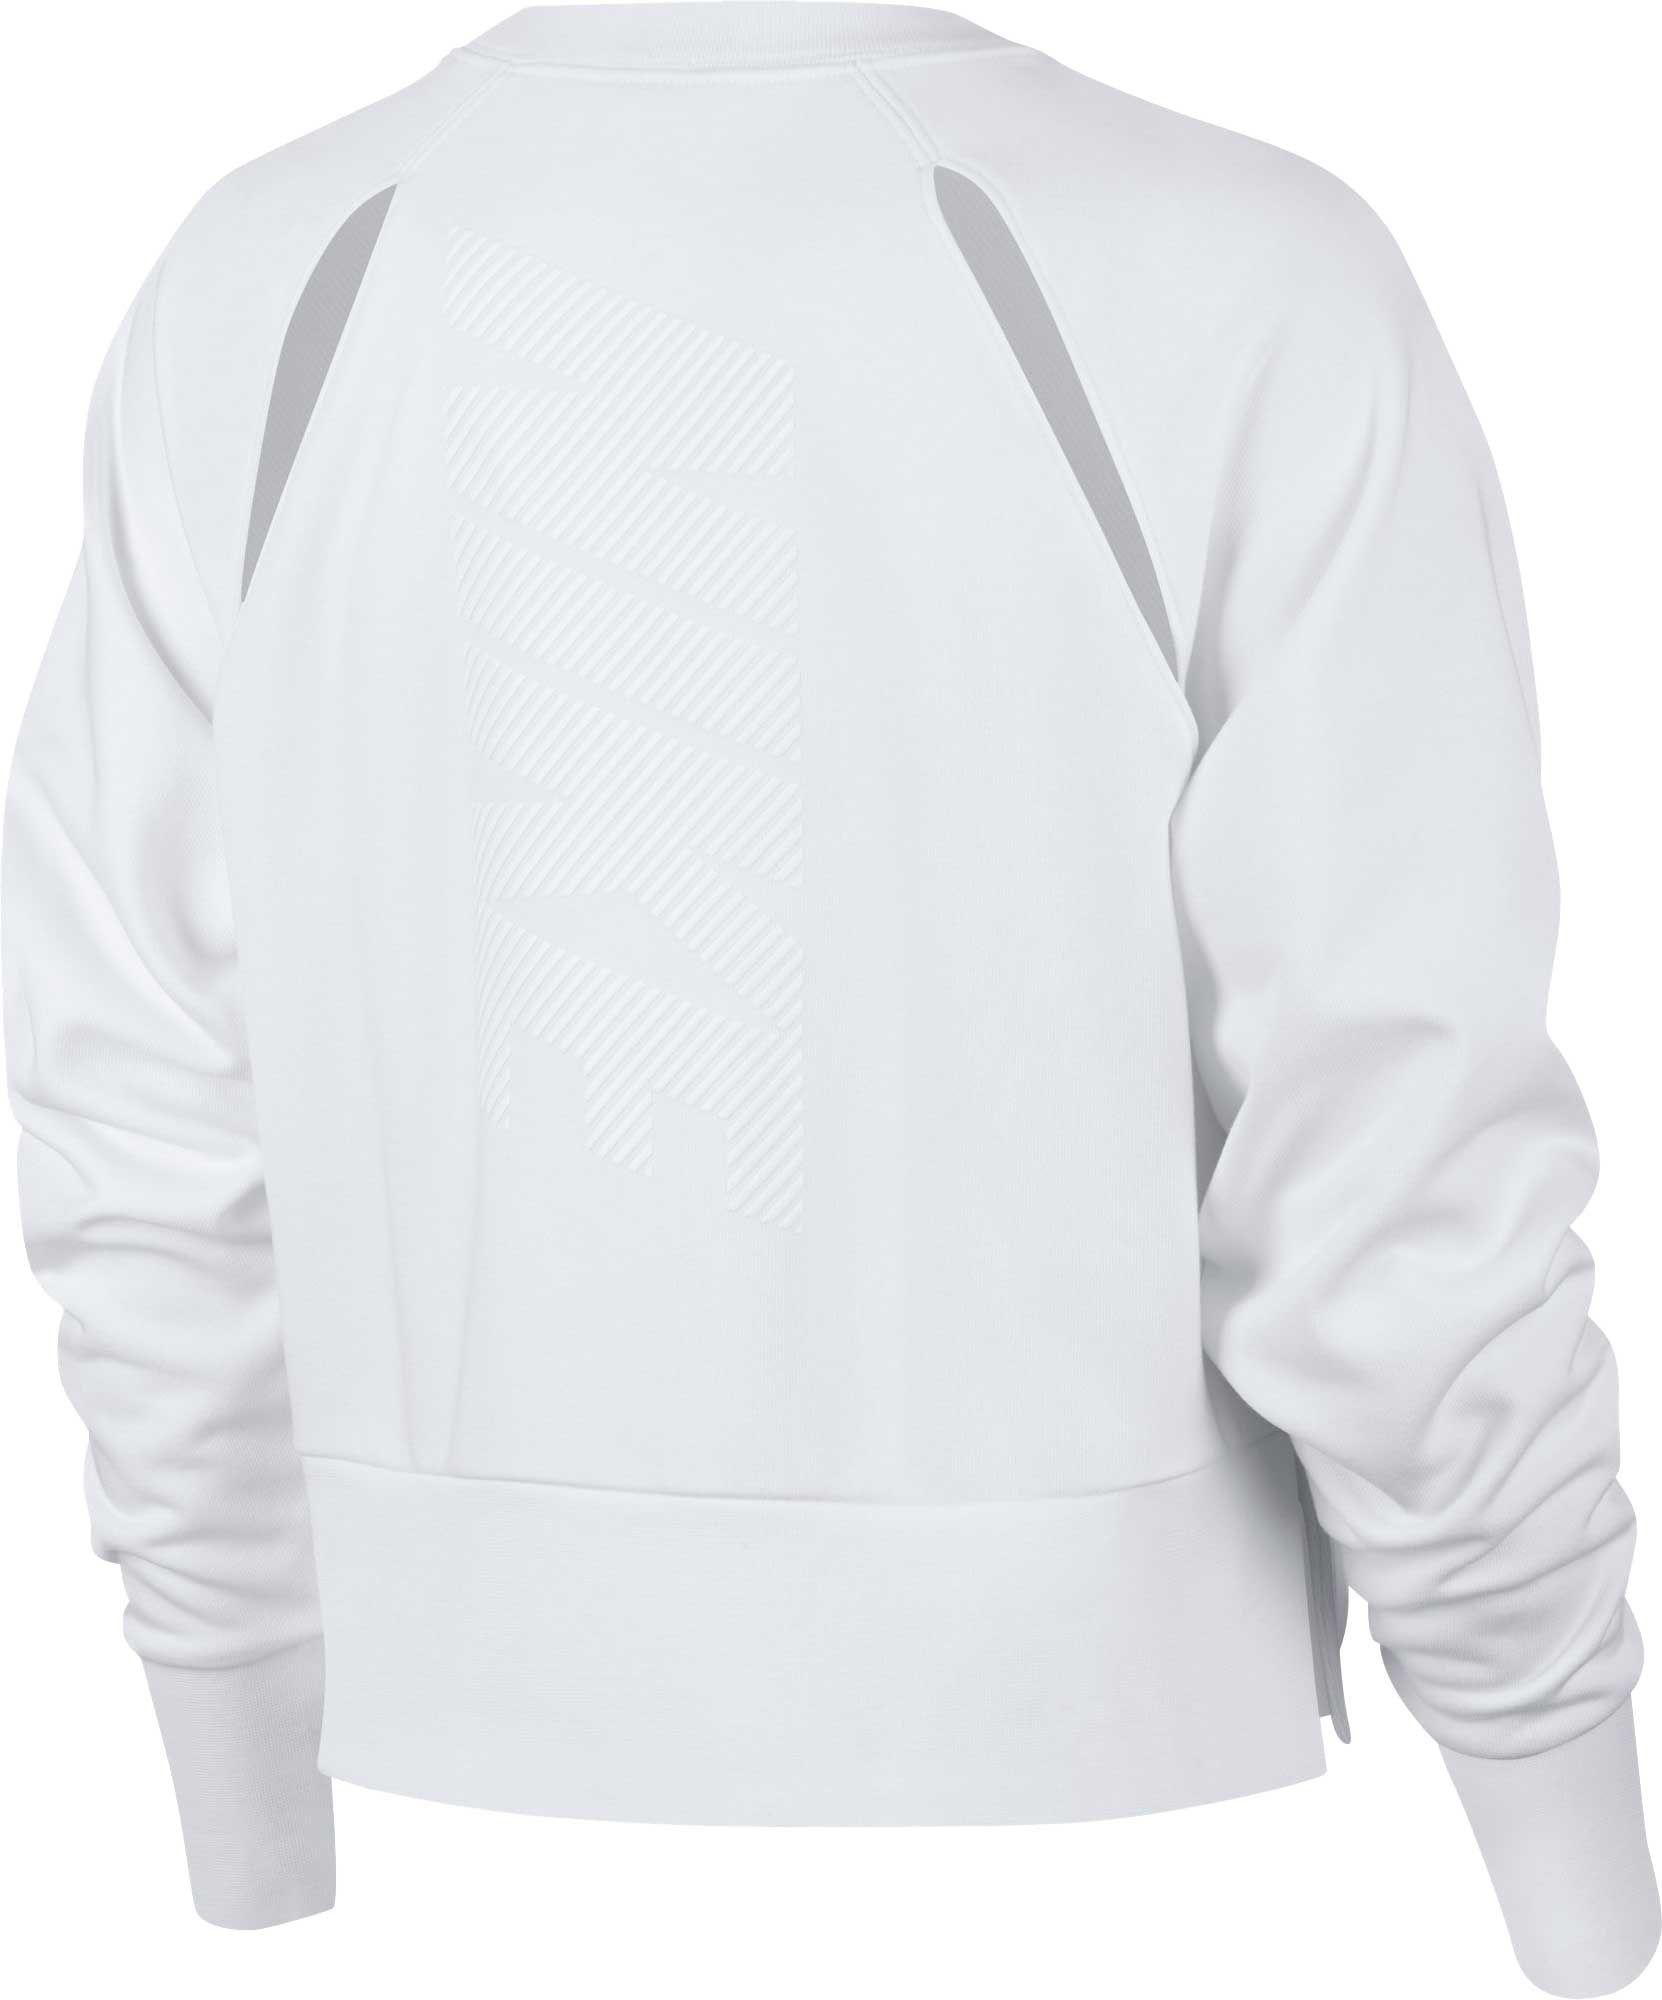 57f0d3f94dc31 Lyst - Nike Versa Slash Training Crew Pullover in White